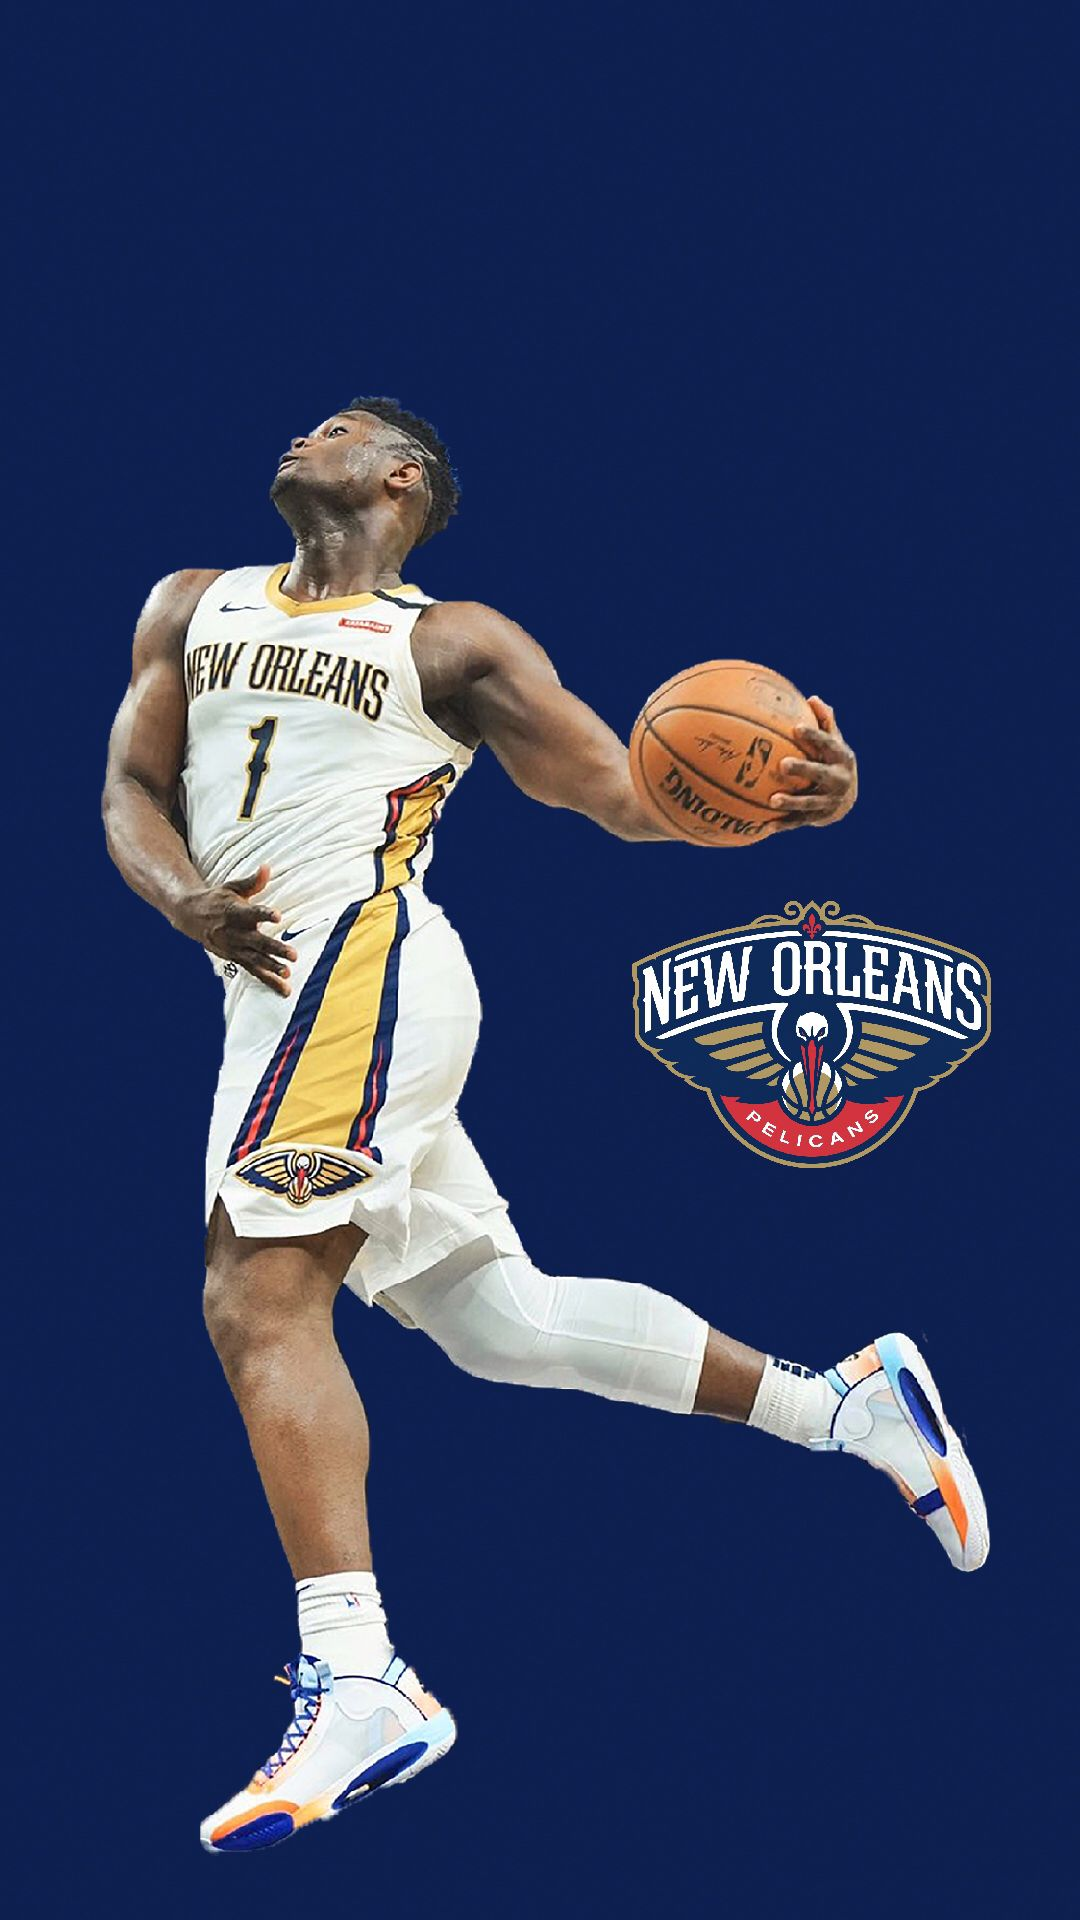 Nola Pelicans In 2020 Kobe Bryant Wallpaper Nba Wallpapers Sports Basketball